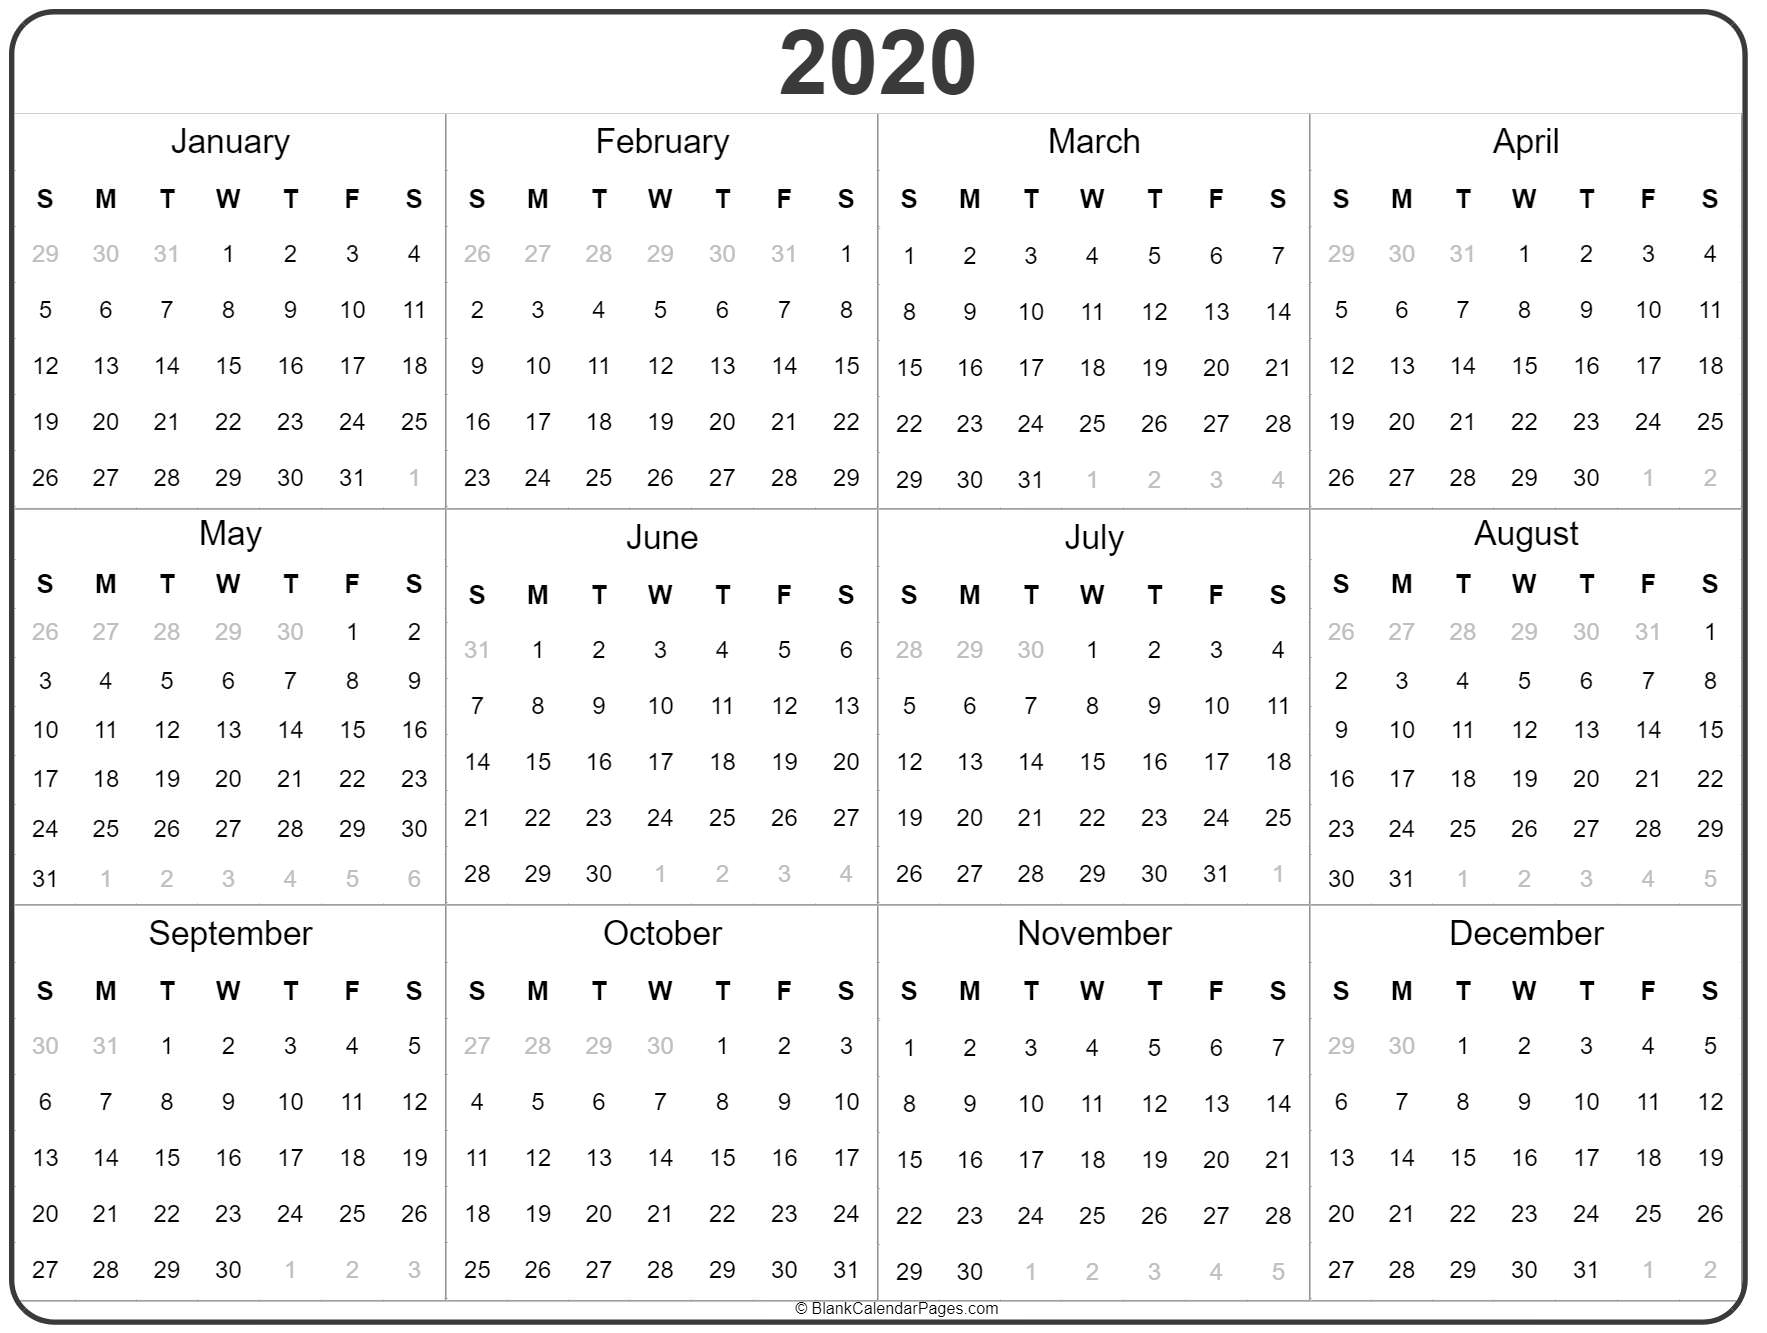 Full Year Calendar 2020 Printable - Wpa.wpart.co